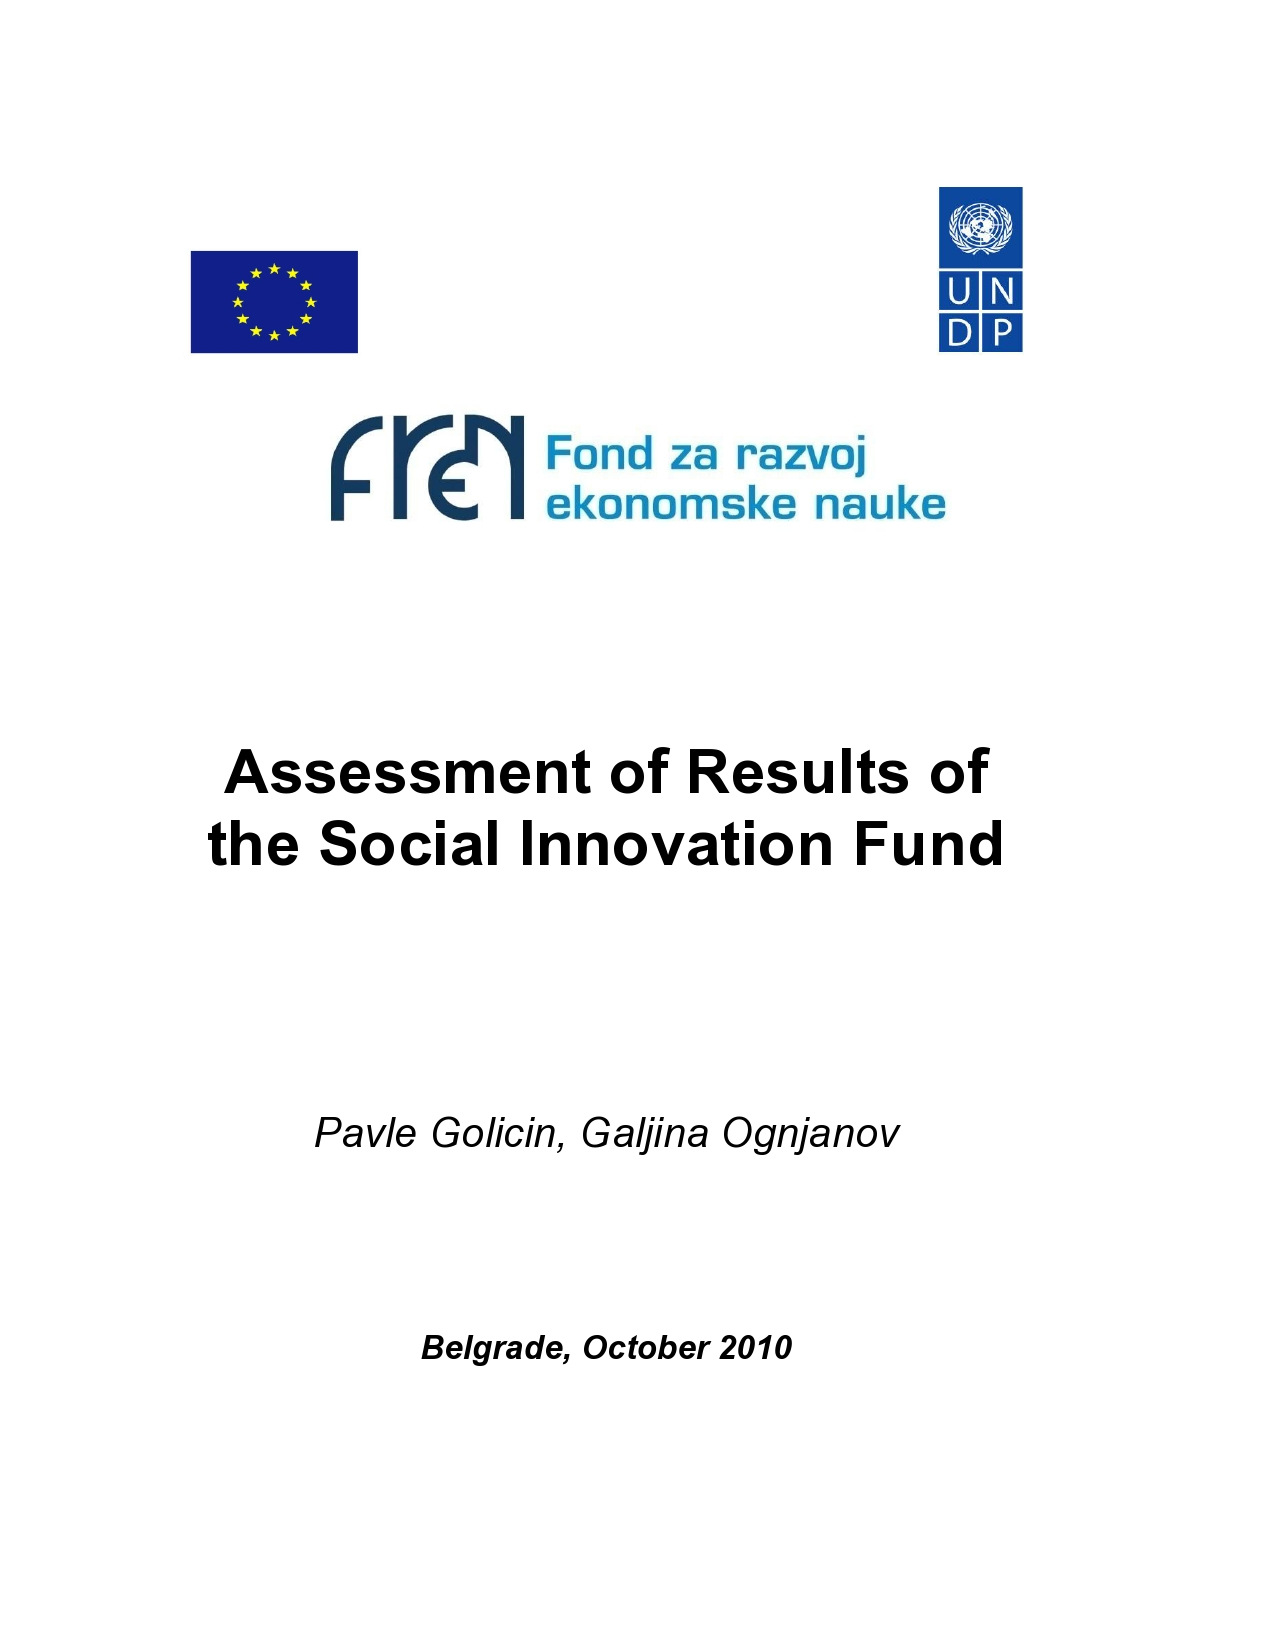 Assessment of Results of the Social Innovation Fund